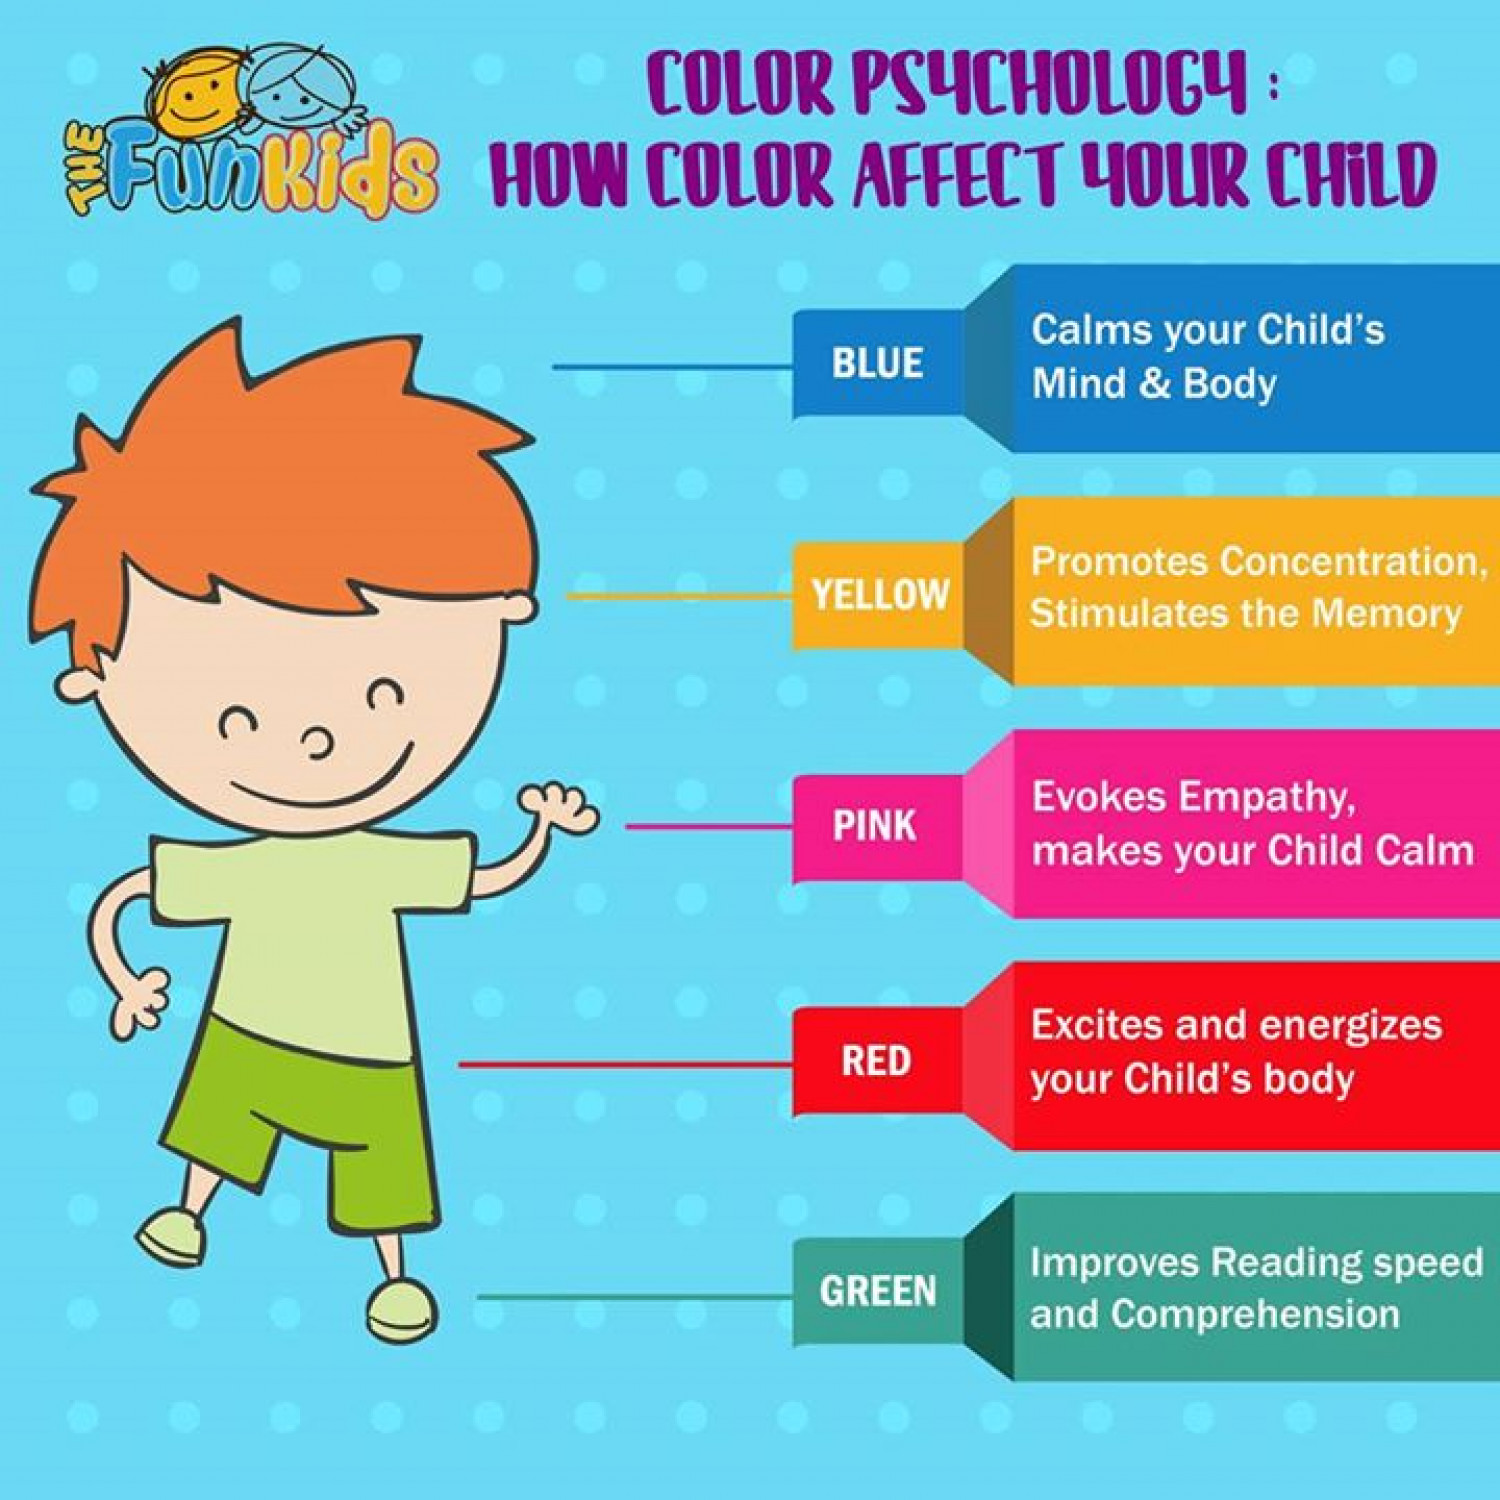 Color Psychology - The Effect of Color on Your Child | Visual.ly